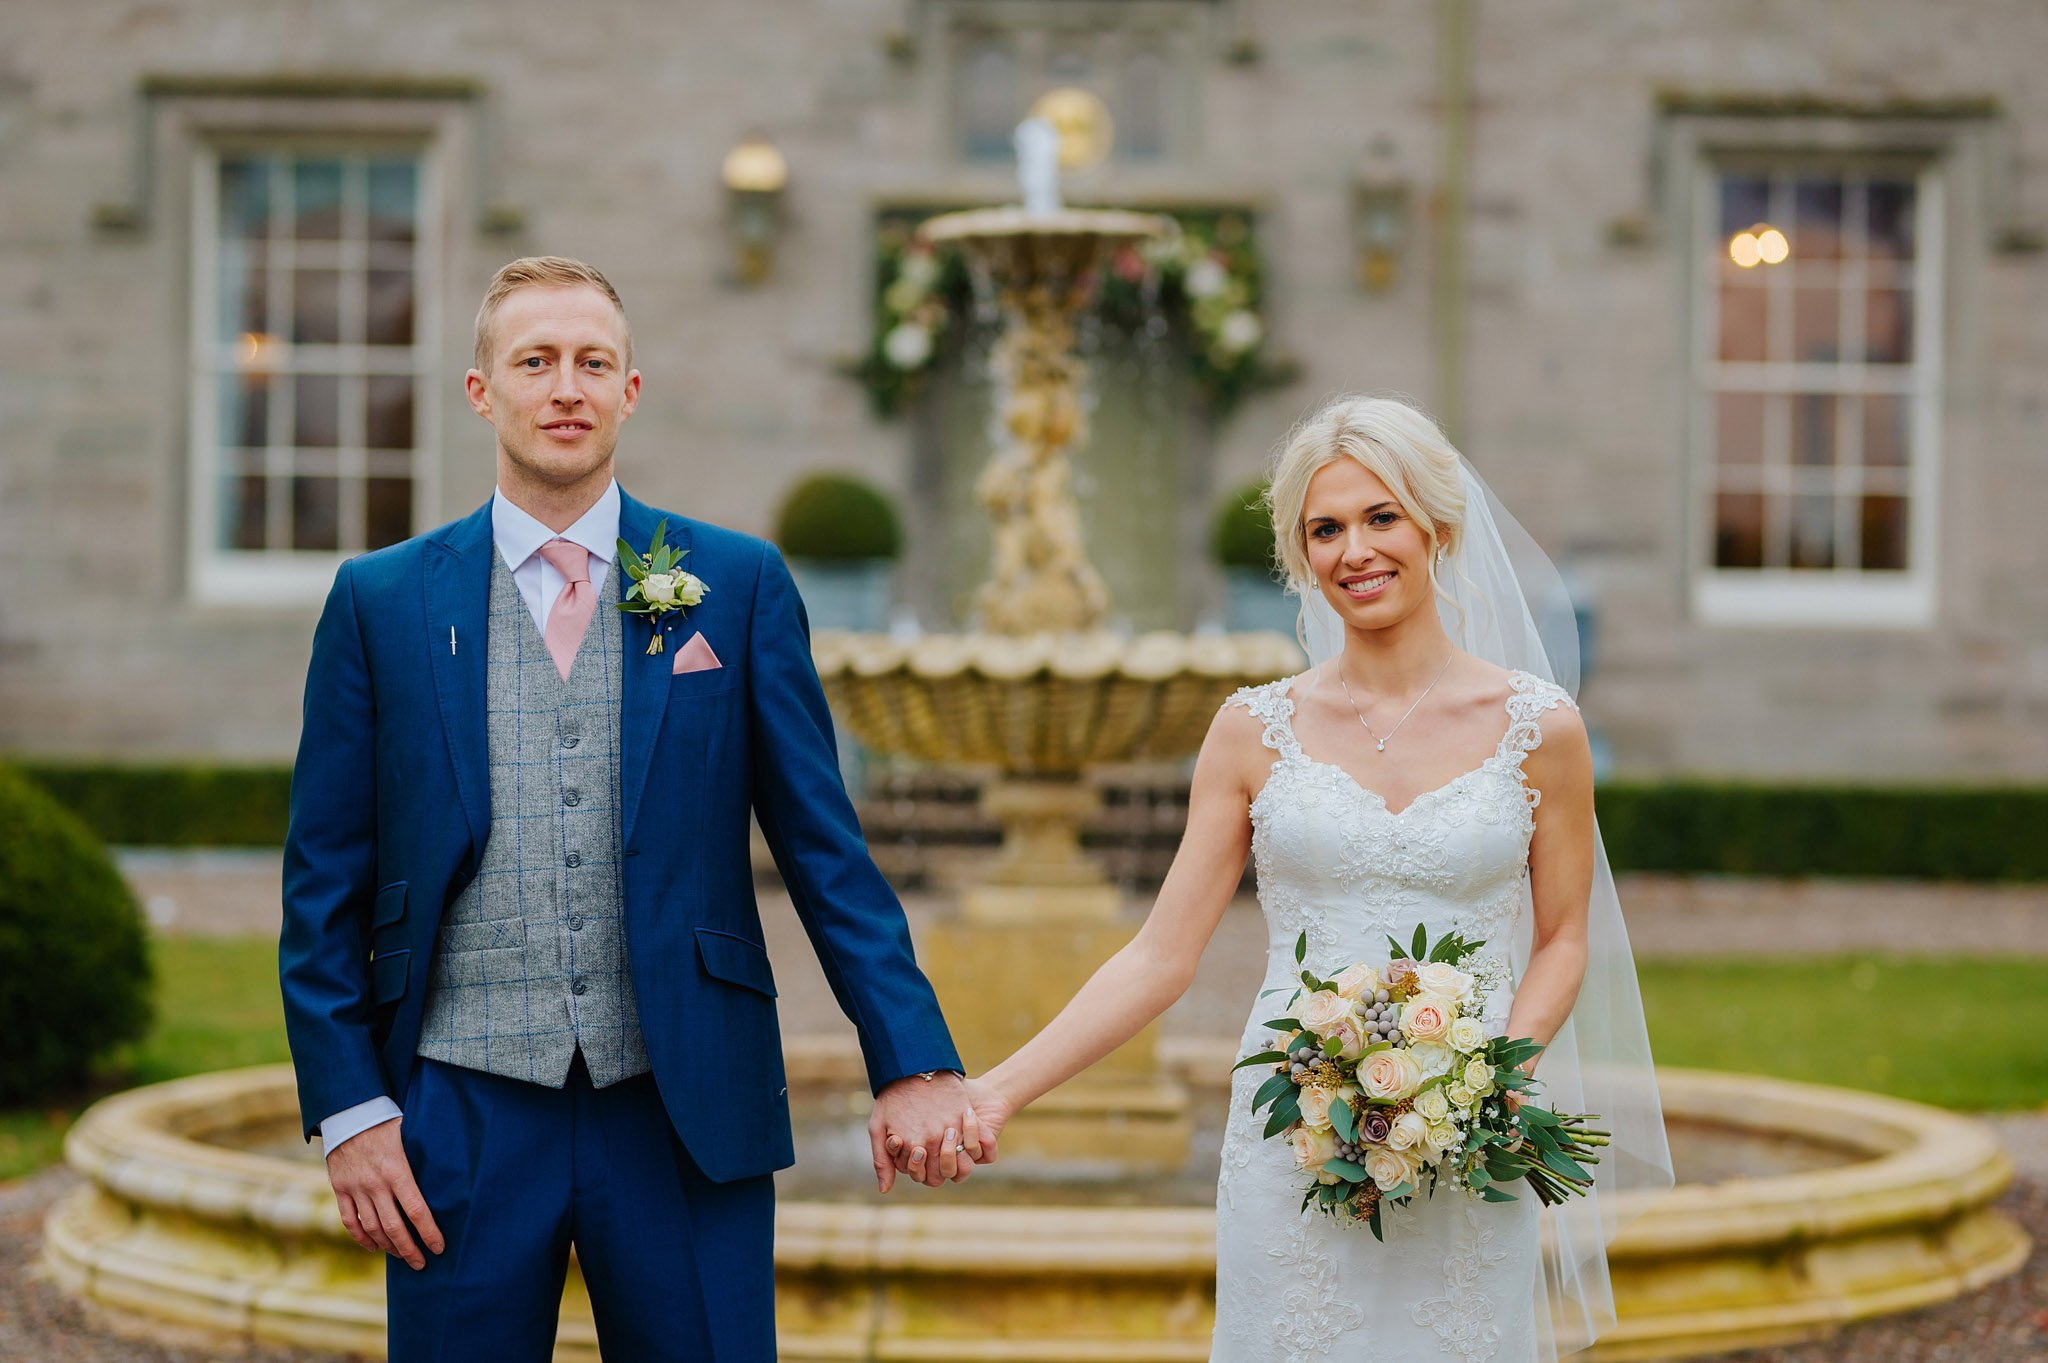 lemore manor wedding herefordshire 98 - Lemore Manor wedding, Herefordshire - West Midlands | Sadie + Ken